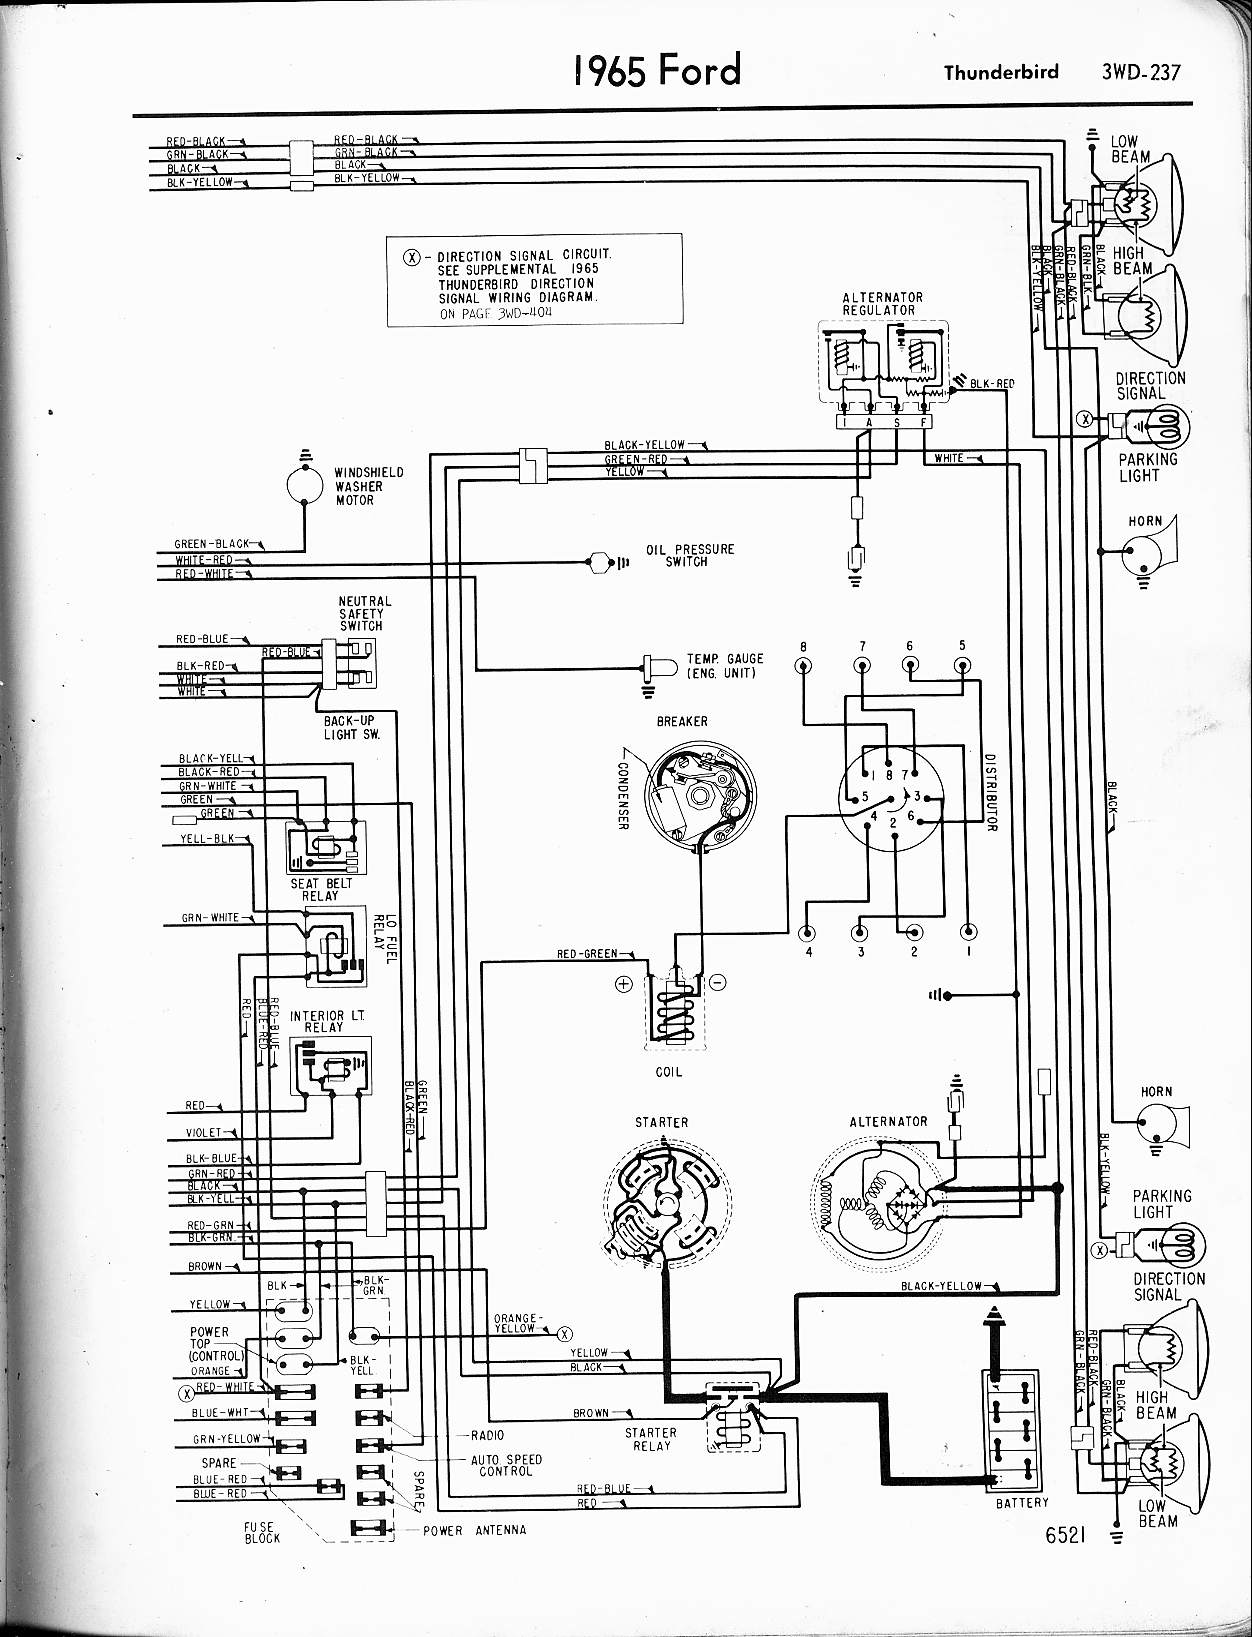 MWire5765 237 57 65 ford wiring diagrams Equus Fuel Gauge Wiring Diagram at bakdesigns.co